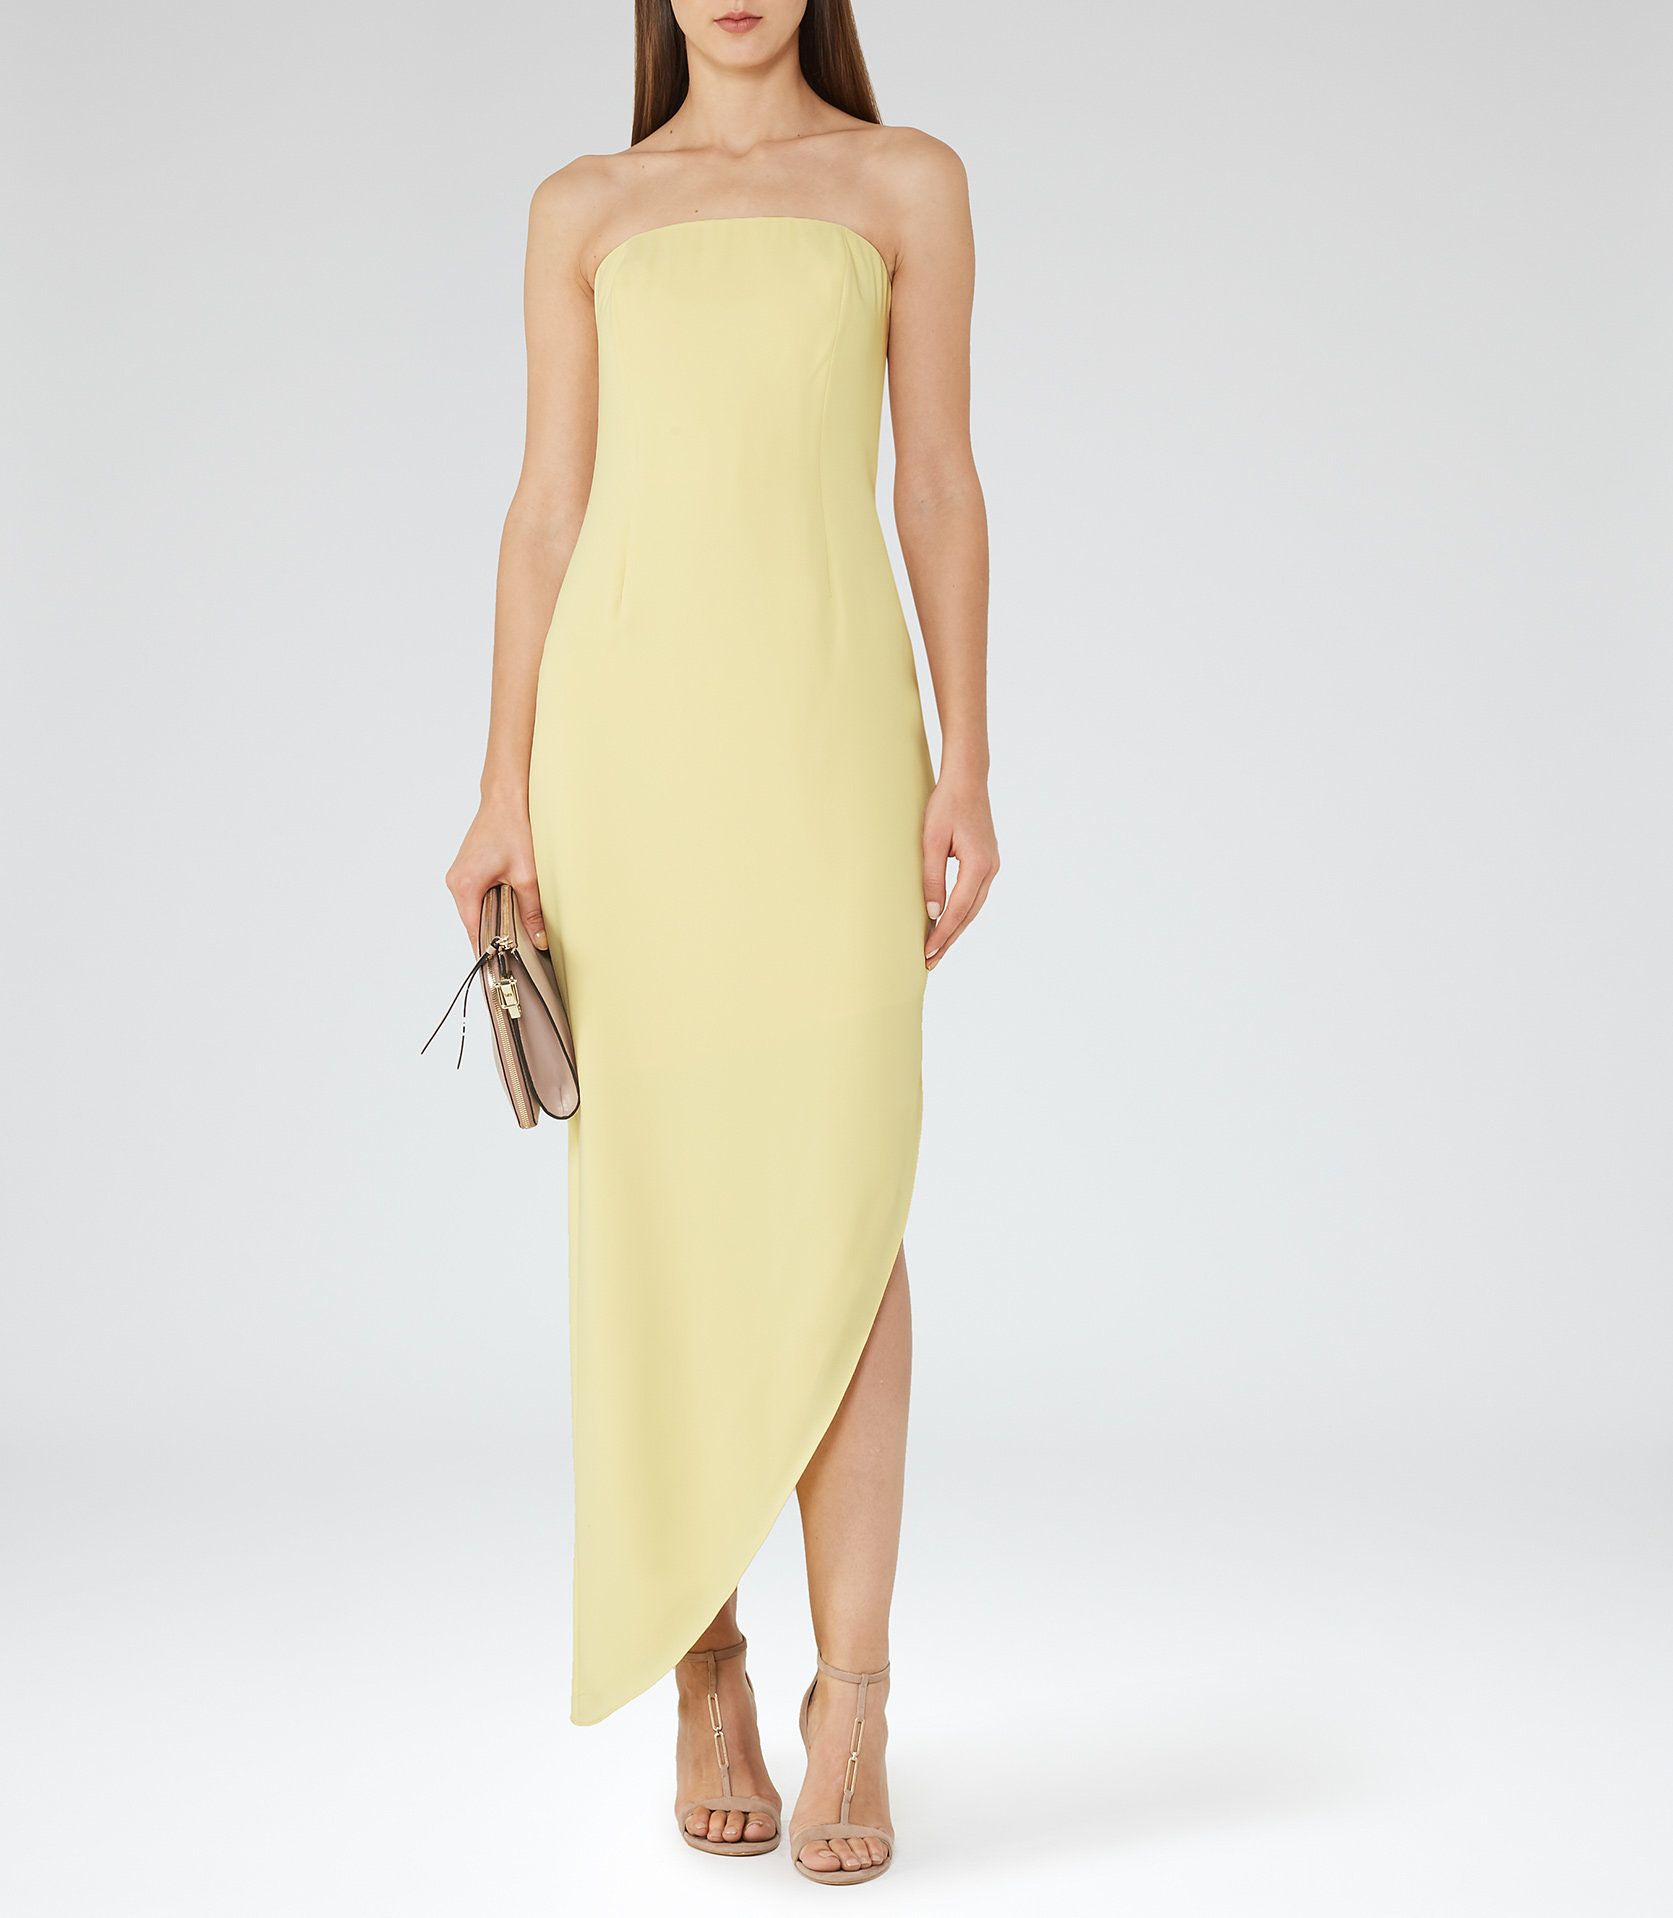 0e4c28066600 Rima Lemon Strapless Asymmetric Maxi Dress - REISS   The rima strapless  asymmetric maxi dress in